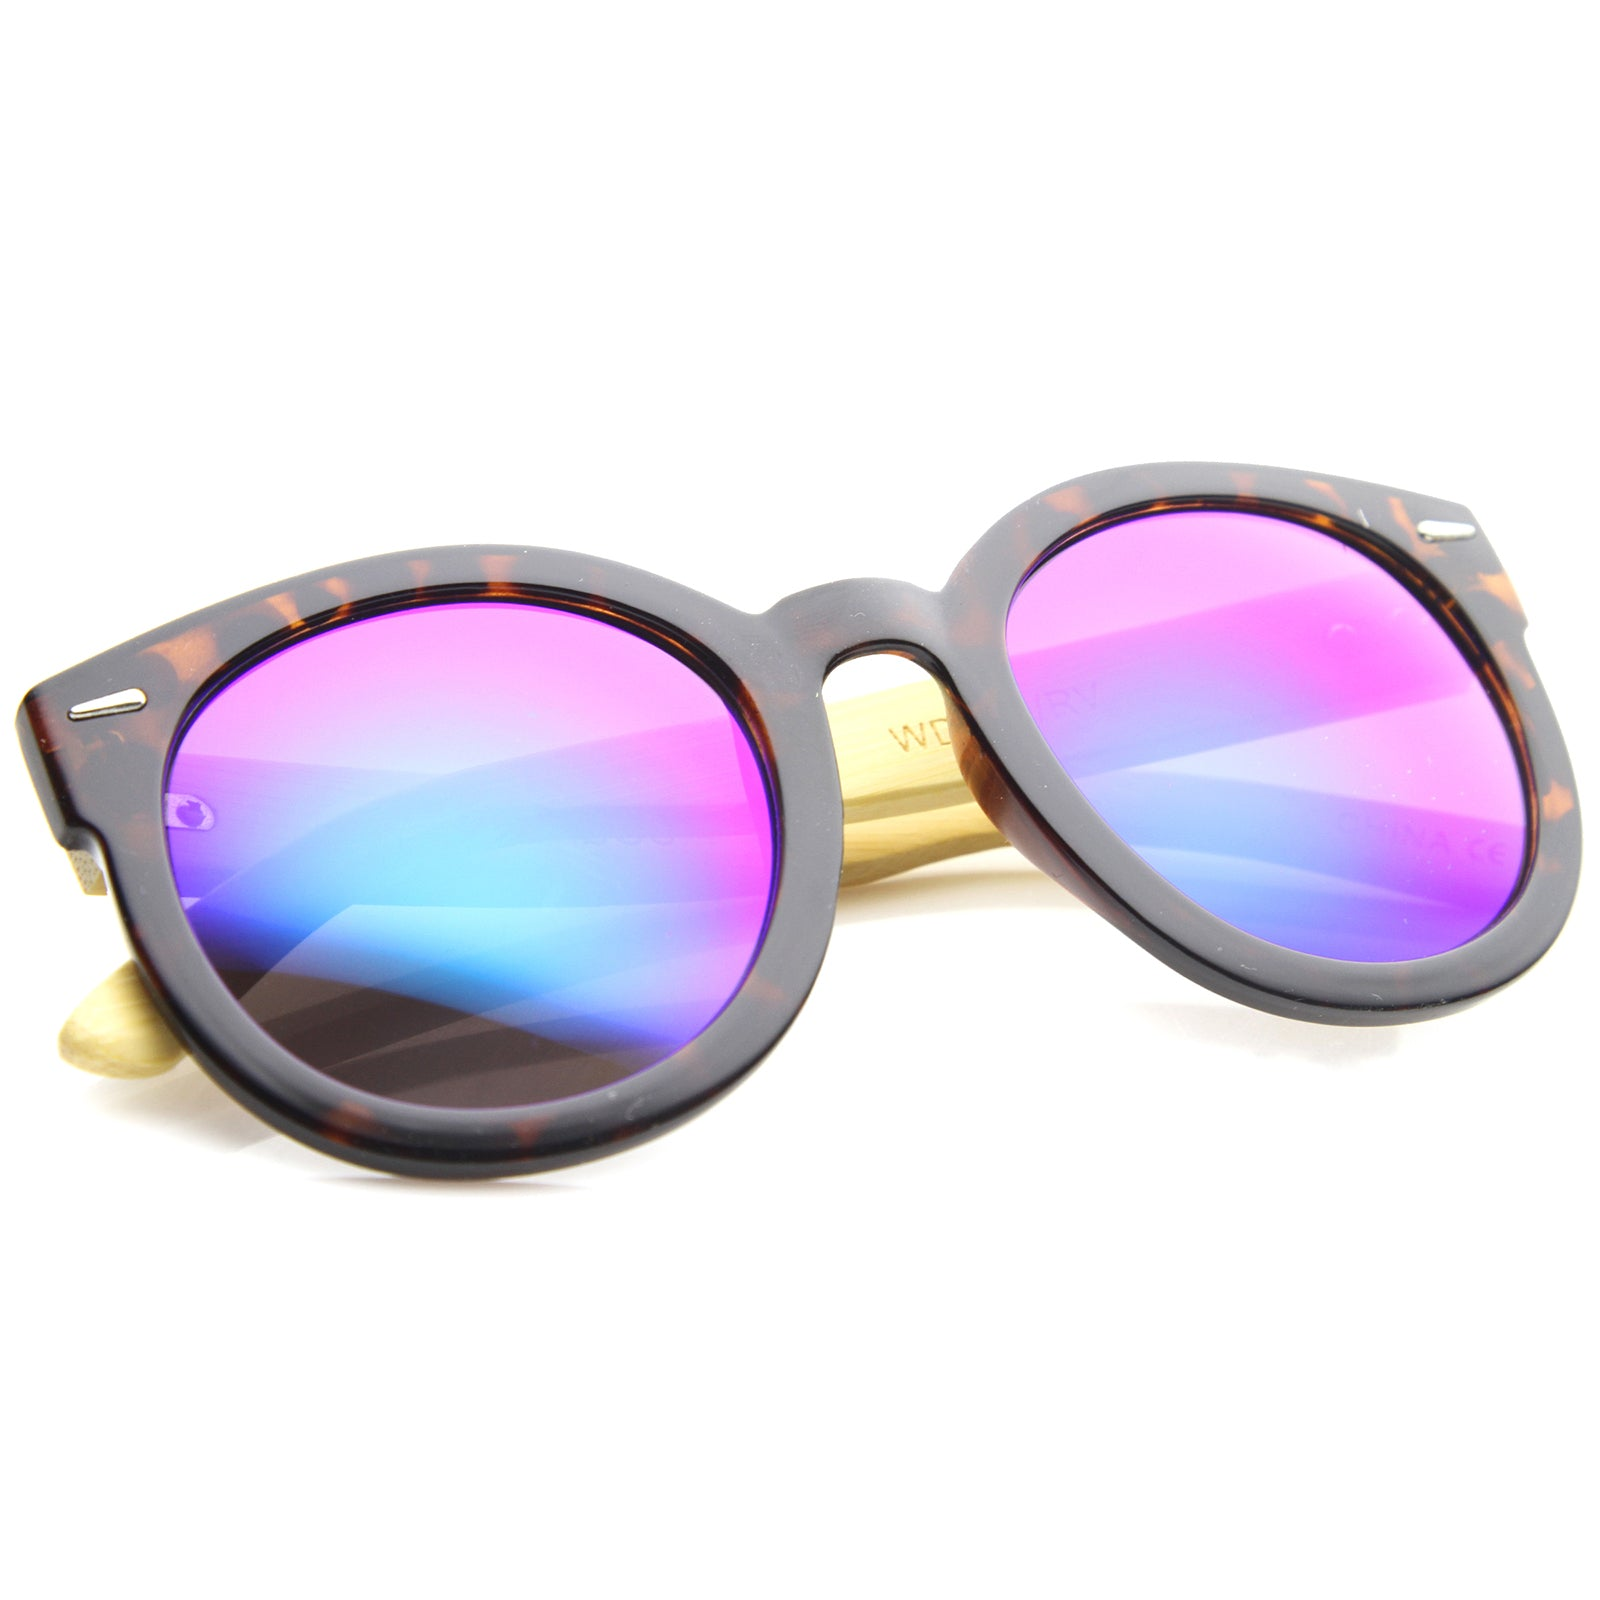 Womens Oversized Sunglasses With UV400 Protected Mirrored Lens - sunglass.la - 16